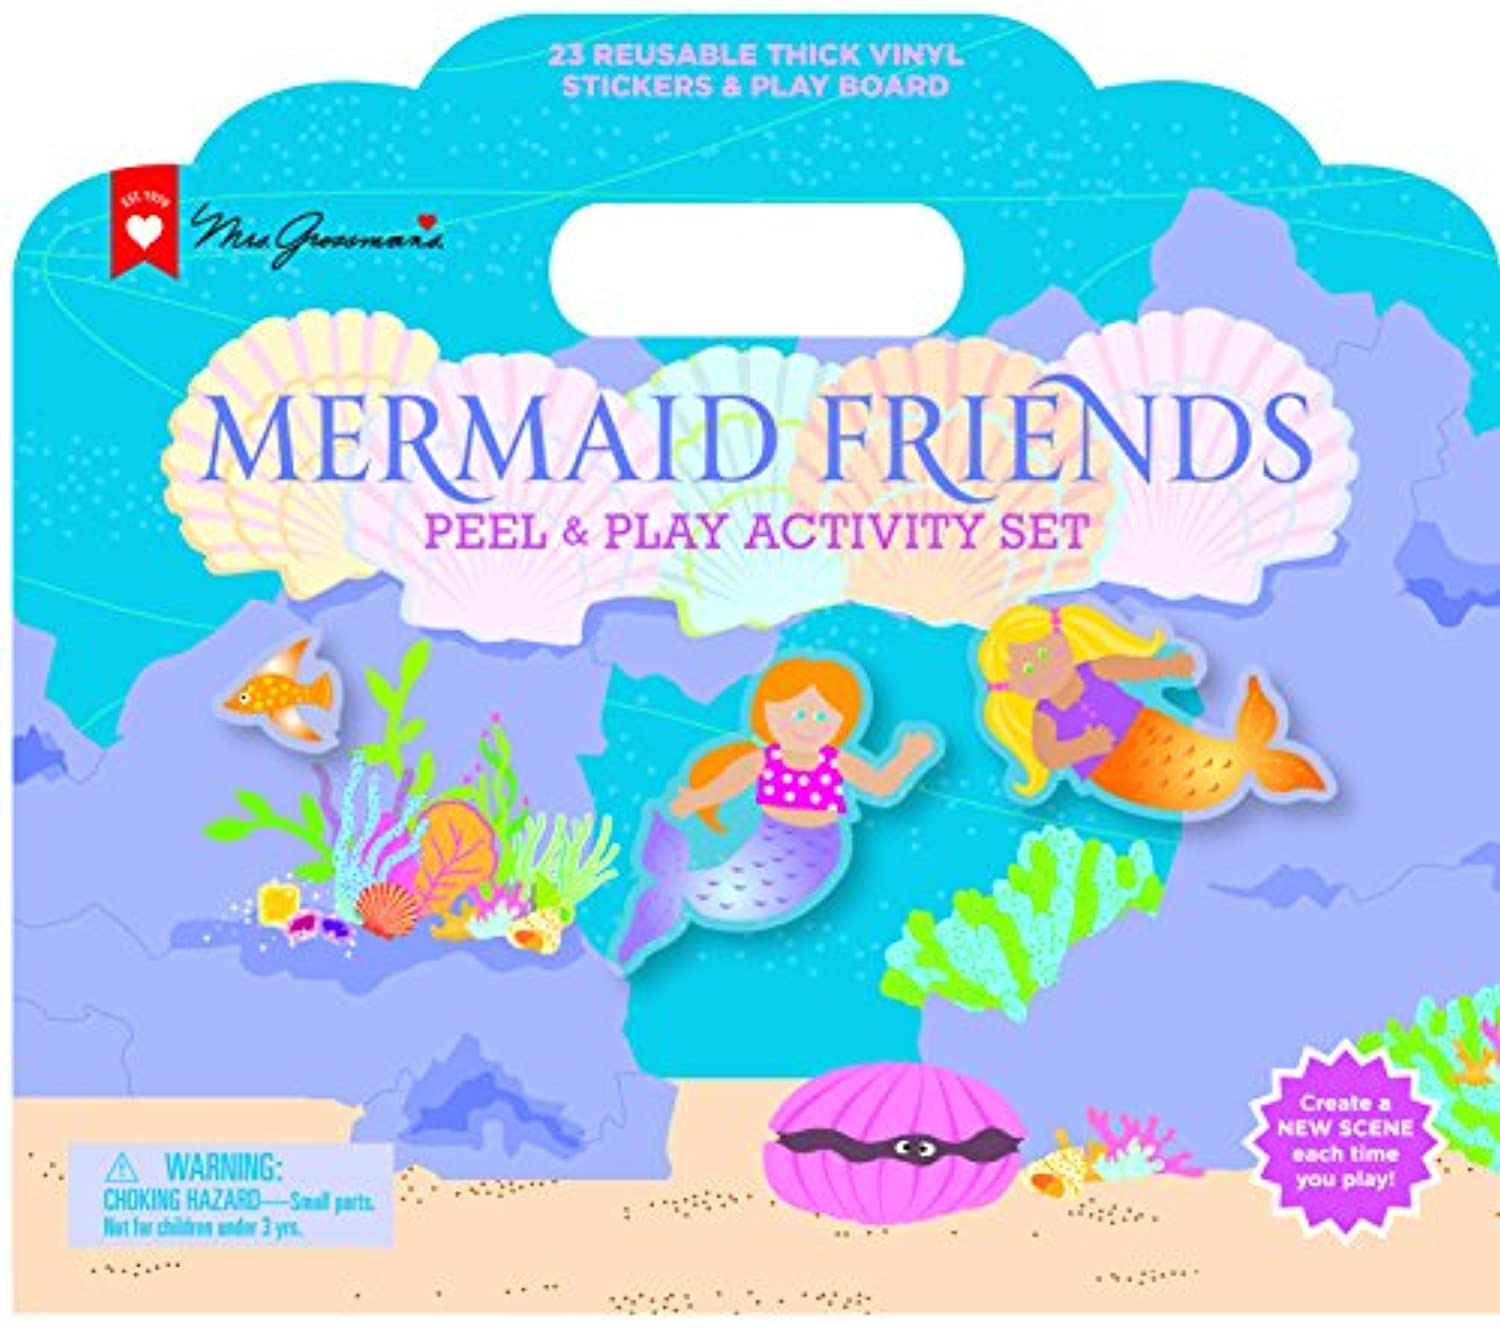 (Mermaids) - Mrs. Grossman's - Mermaid Friends - Peel and Play Kids Activity Set with Reusable Vinyl Stickers and Fold-Out Story Board - with Storage and Travel Handle - For Boys and Girls Ages 3 and Up